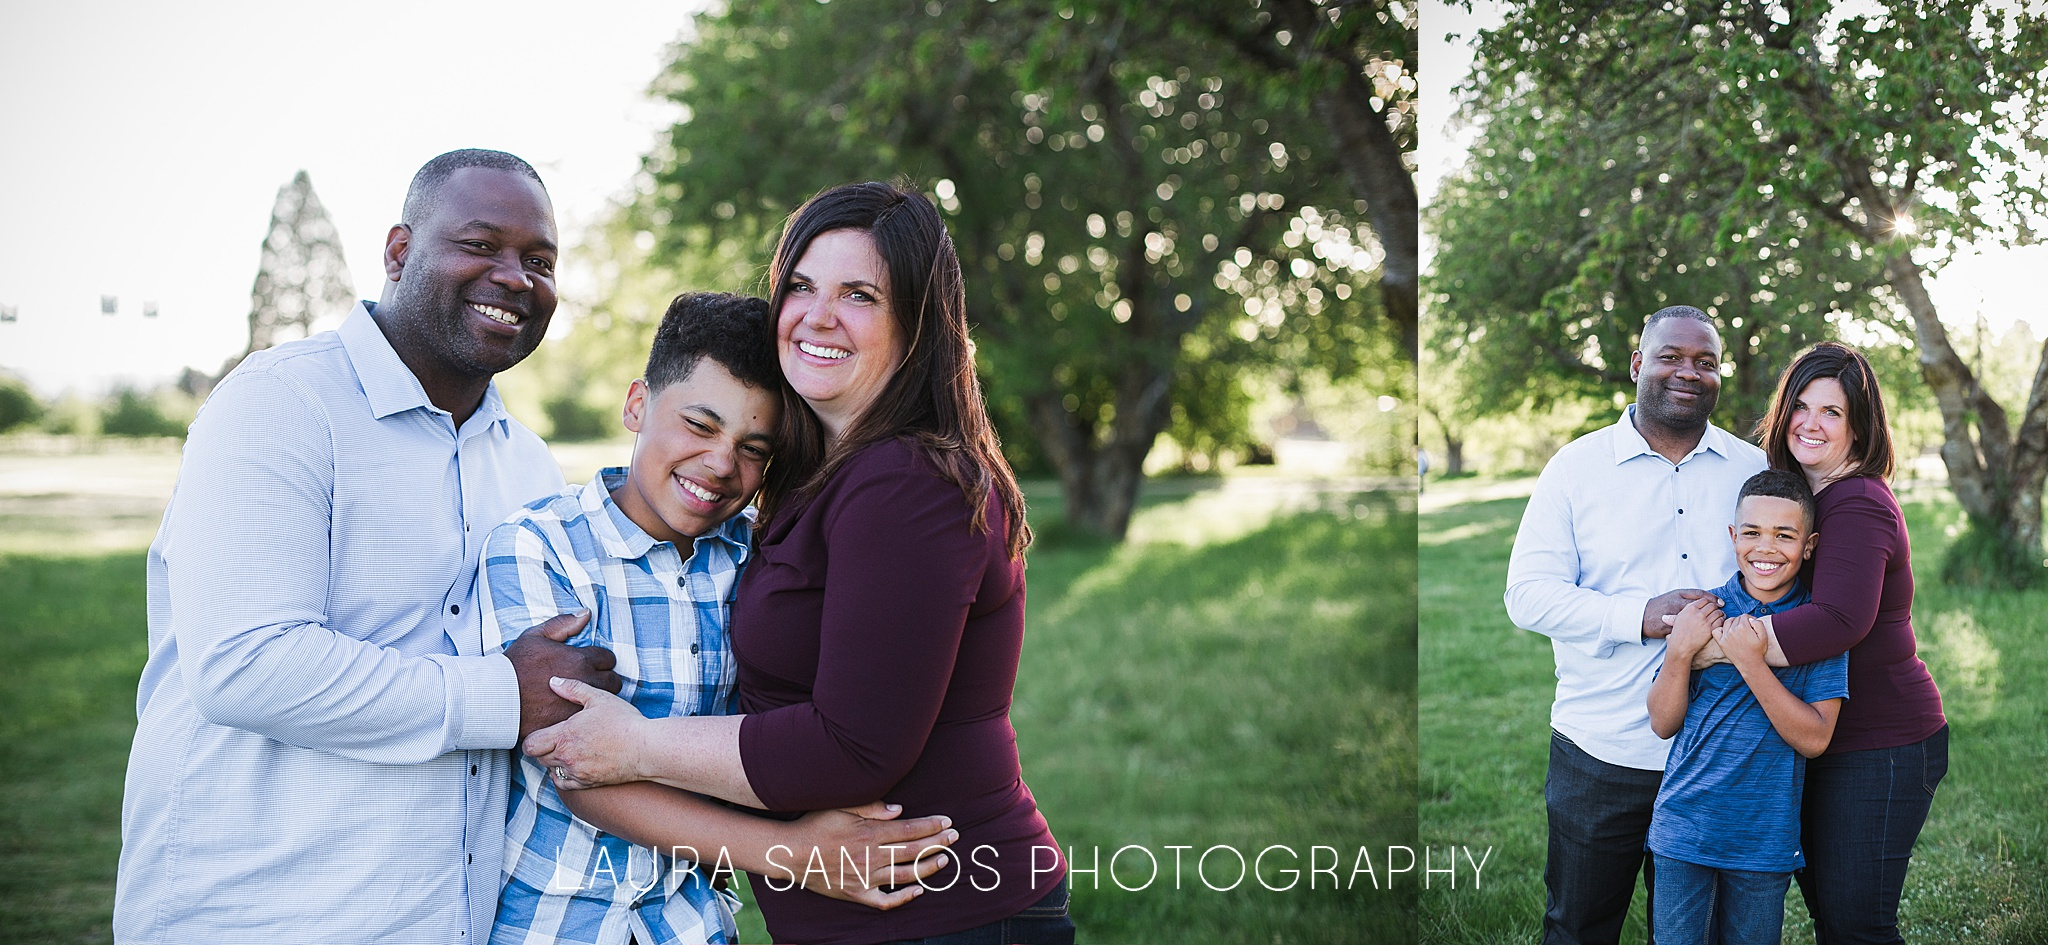 Laura Santos Photography Portland Oregon Family Photographer_0948.jpg